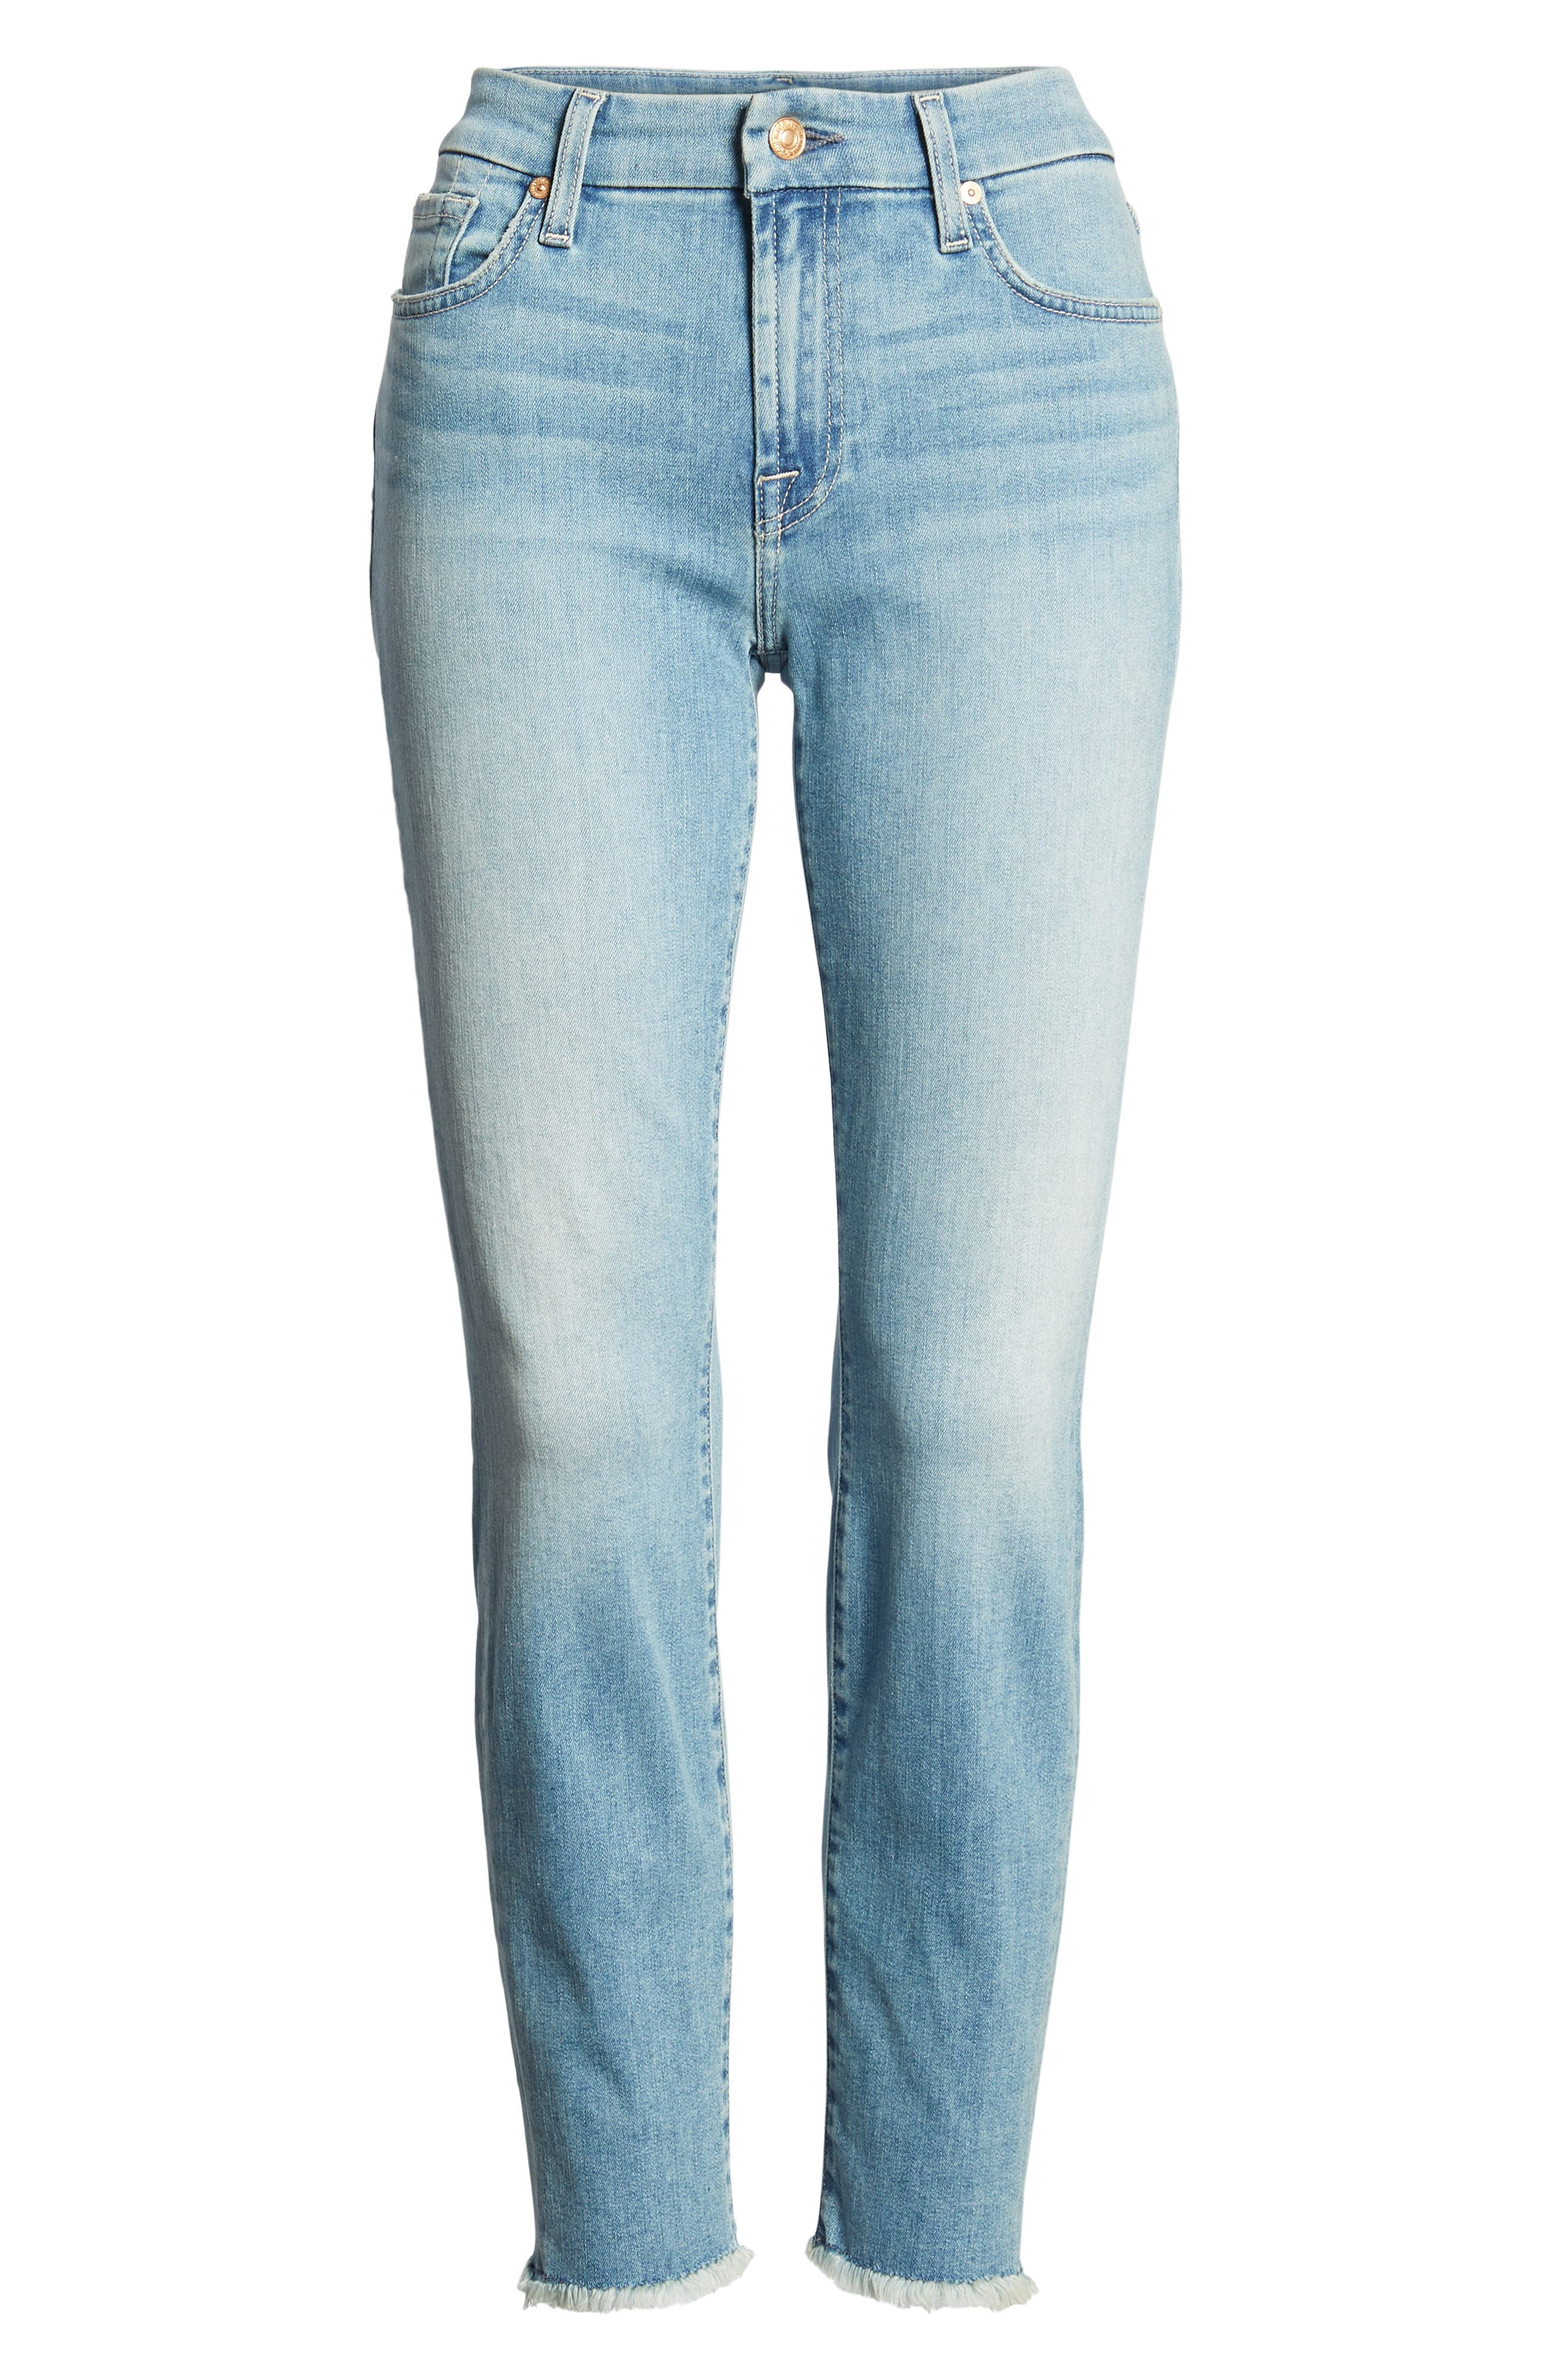 Kimmie Crop Straight Leg Jeans,                             Alternate thumbnail 7, color,                             400